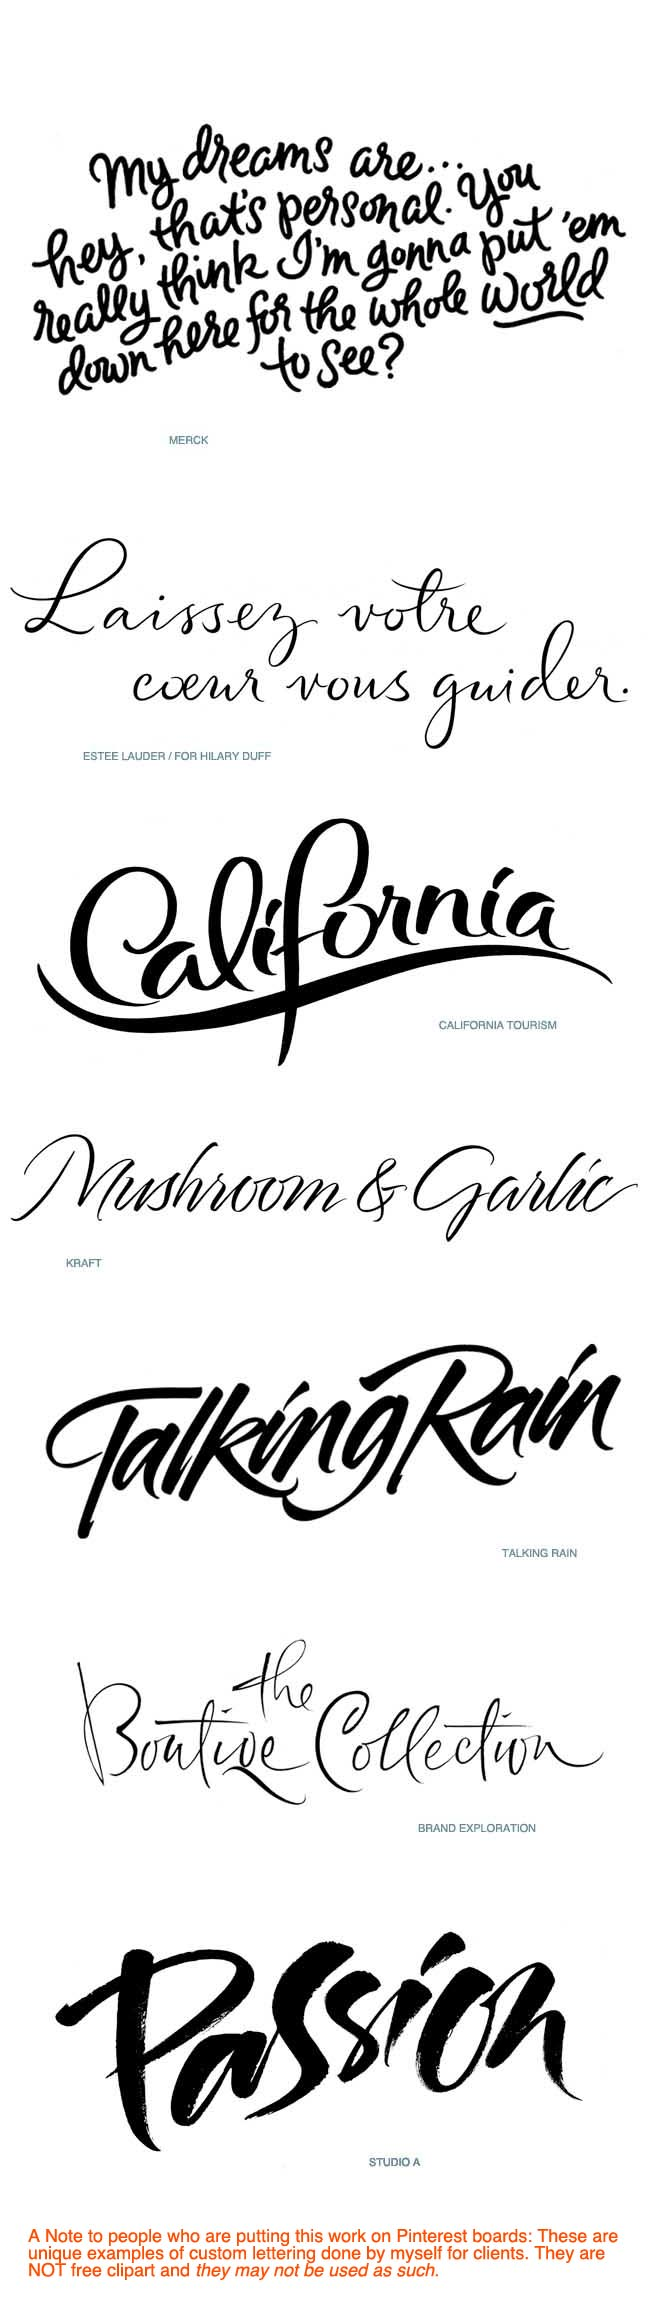 Hand-Lettering-for-Advertising-Iskra-Copyright-by-Iskra-Johnson-calligraphy-Dont-use-these-as-clipa-wallpaper-wp5008296